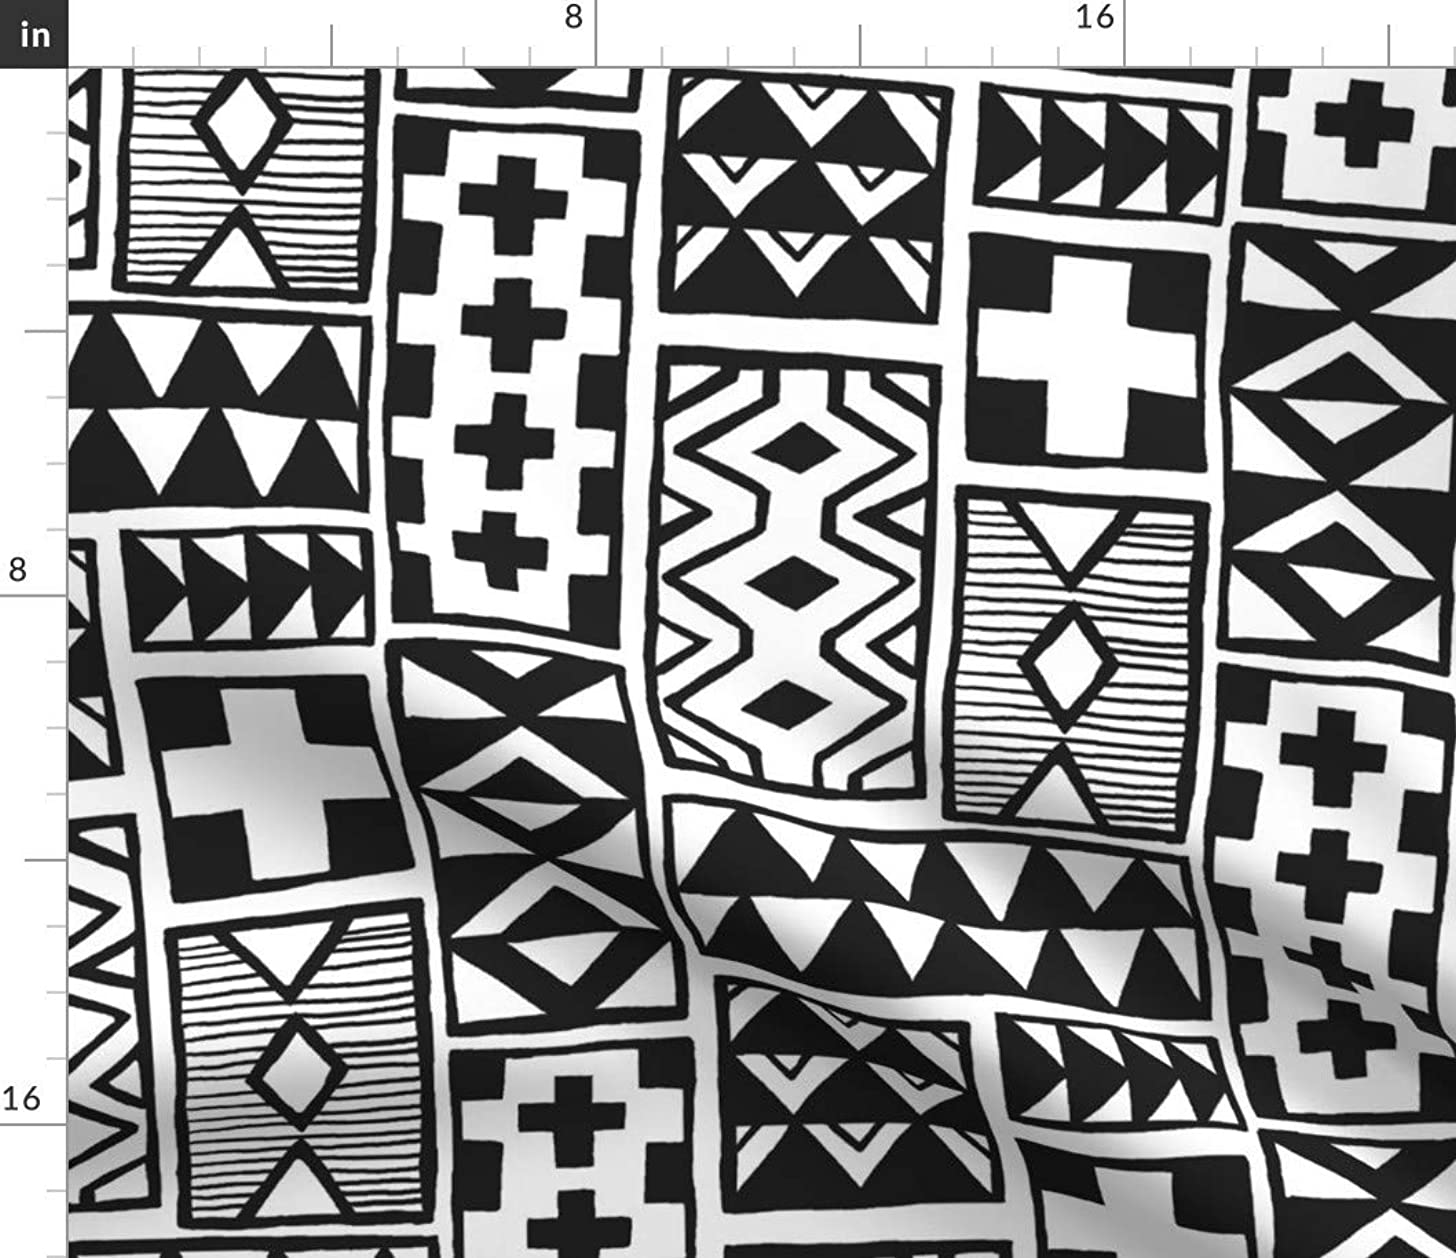 Spoonflower Graphic Fabric - Graphic Black White Geometric Modern Home Decor Graphic Modern Geometric Zig Zag Tribal Black by Leanne Printed on Petal Signature Cotton Fabric by The Yard